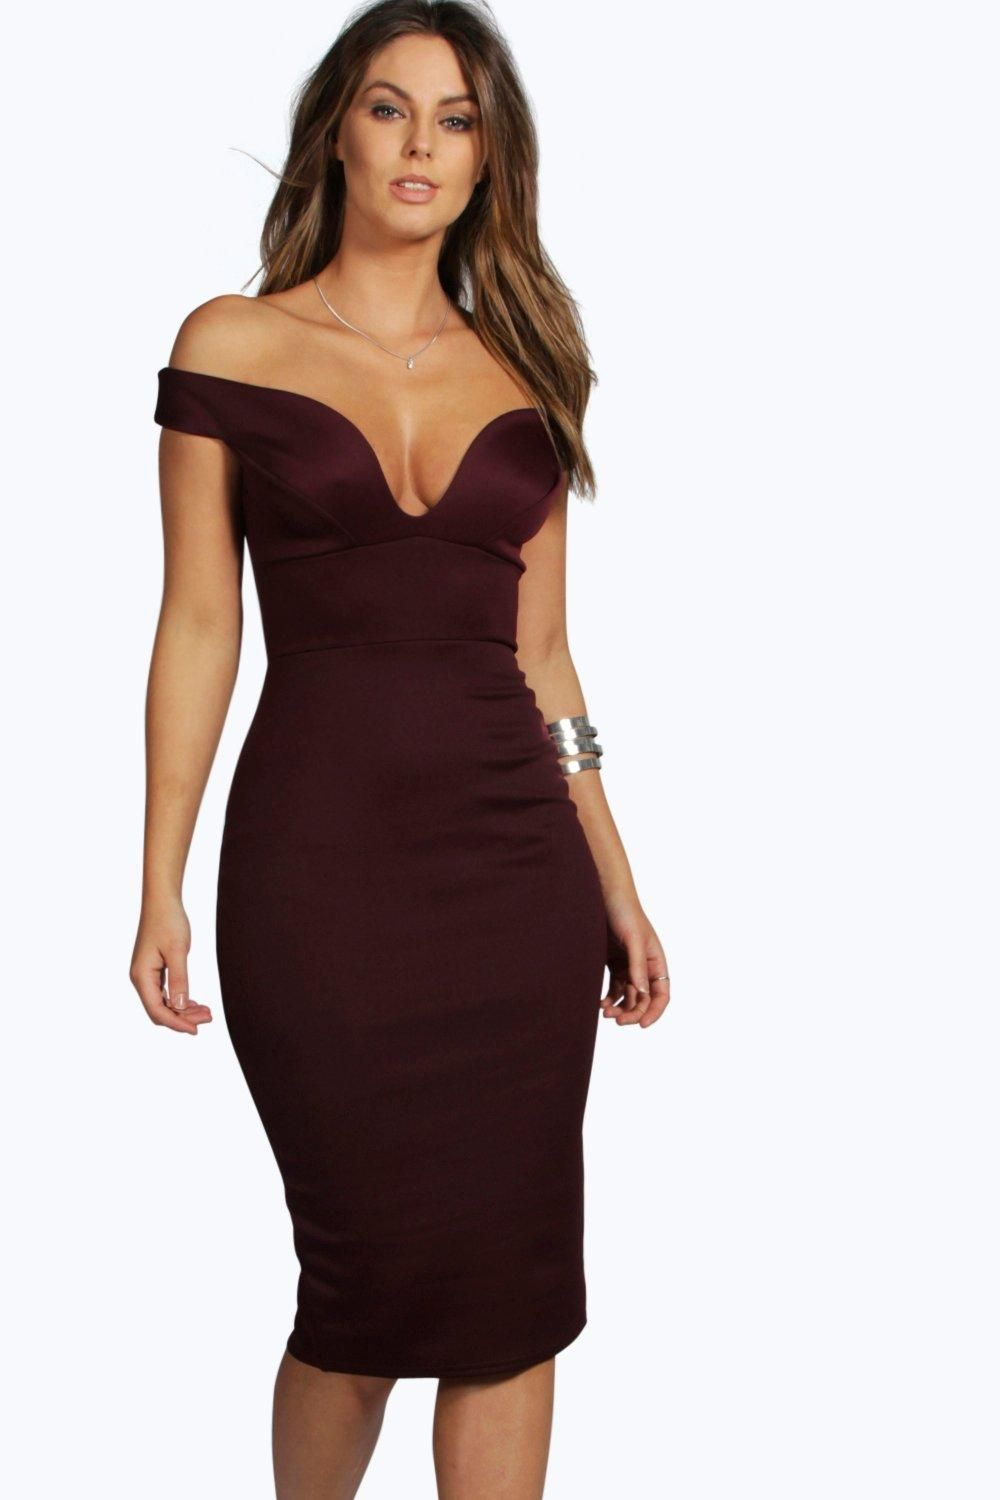 38d86fcd37350 Get dance floor-ready in an entrance-making evening dress. Look knock-out  on nights out in figure-skimming bodycon fits, flowing maxi lengths and  stunning ...